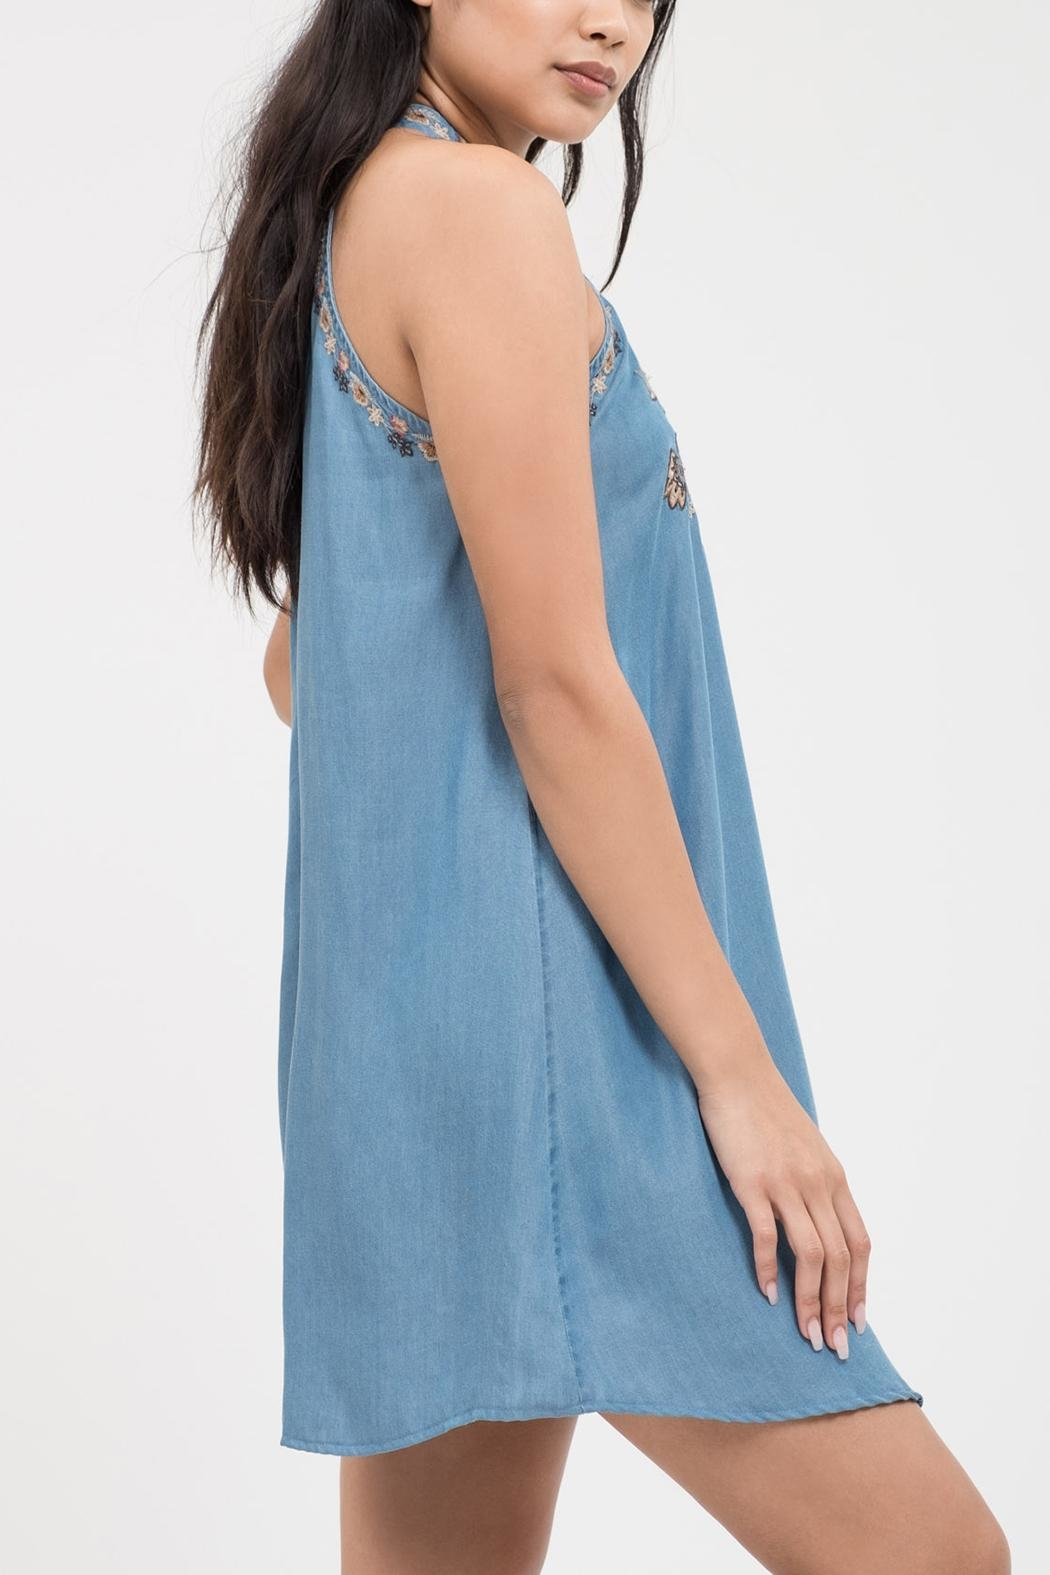 Blu Pepper Floral Embroidery Dress - Front Full Image